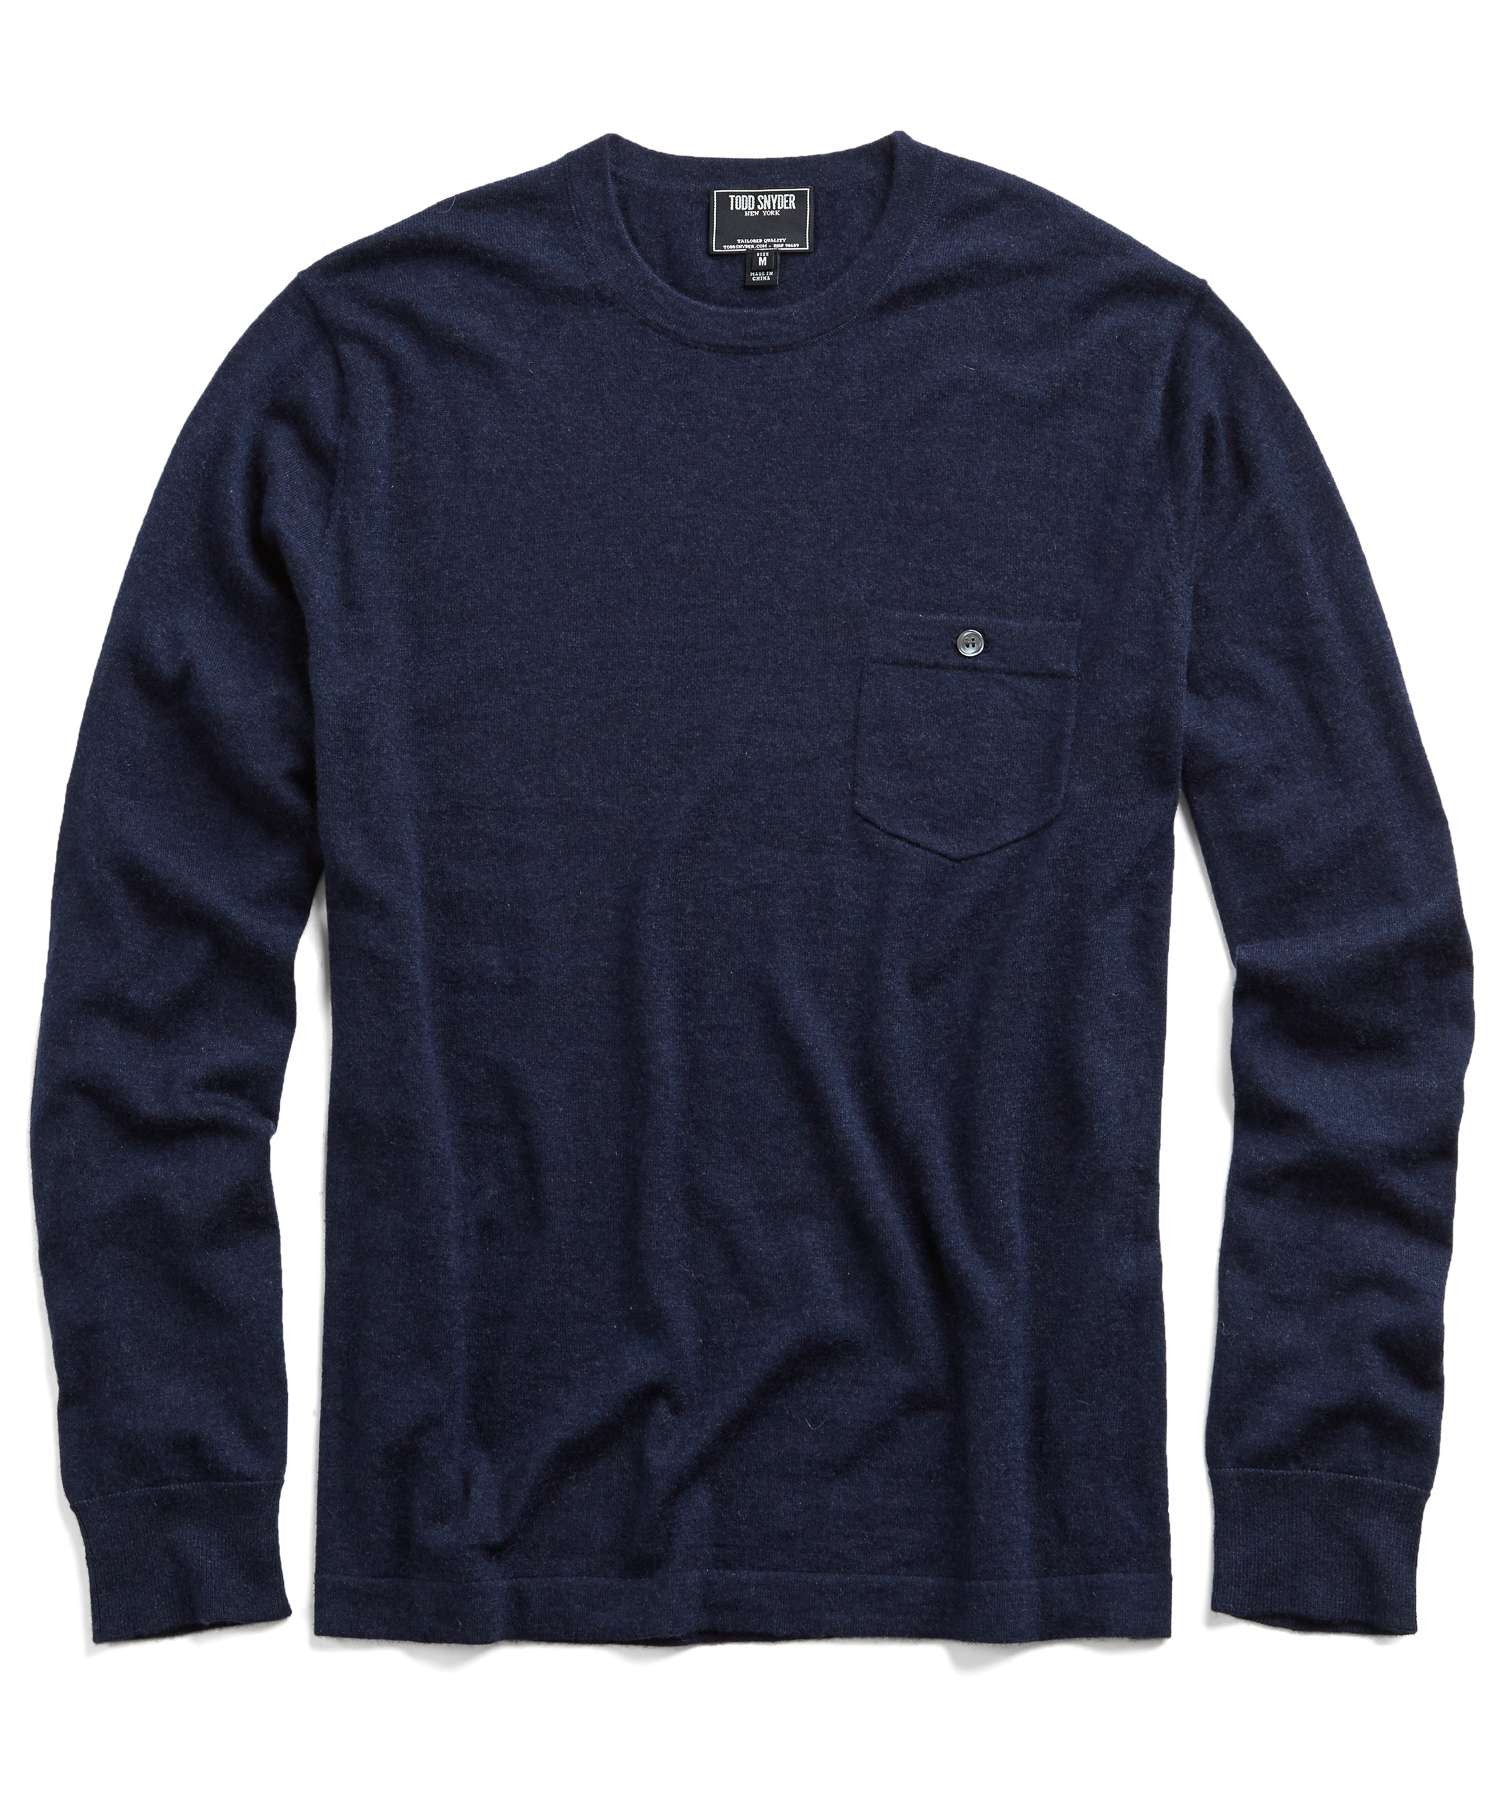 Cashmere T-Shirt Sweater in Navy Heather